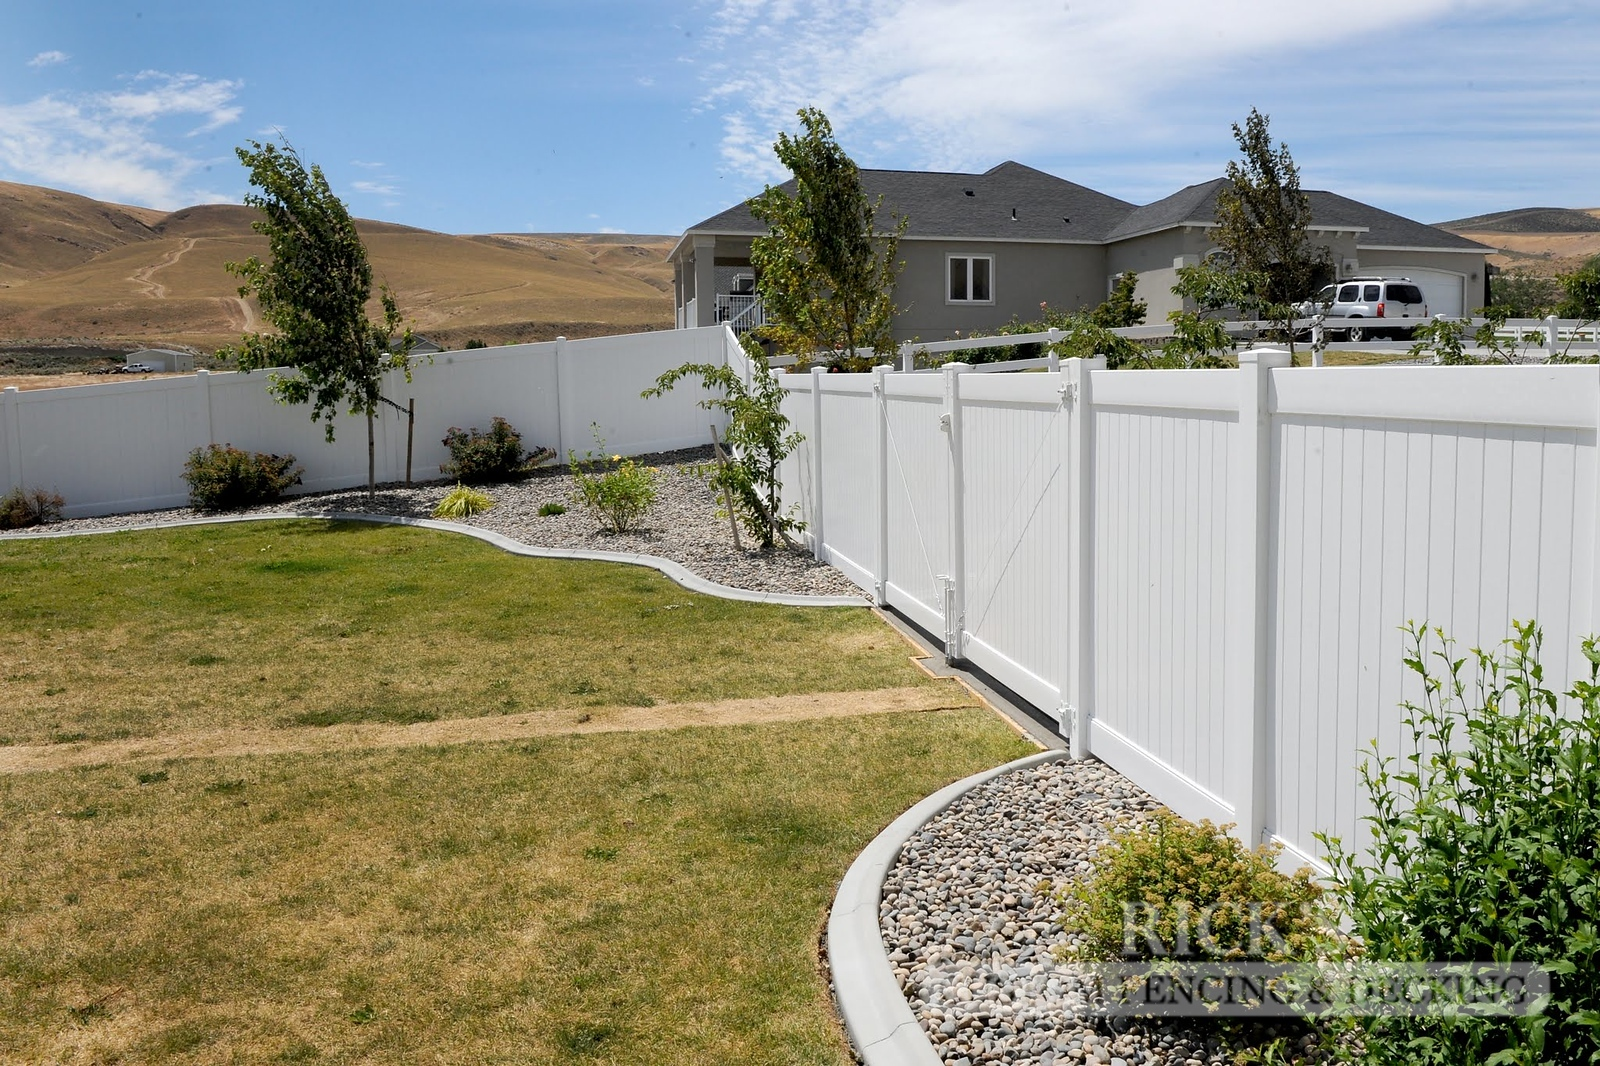 3001 - Vinyl Privacy Fencing